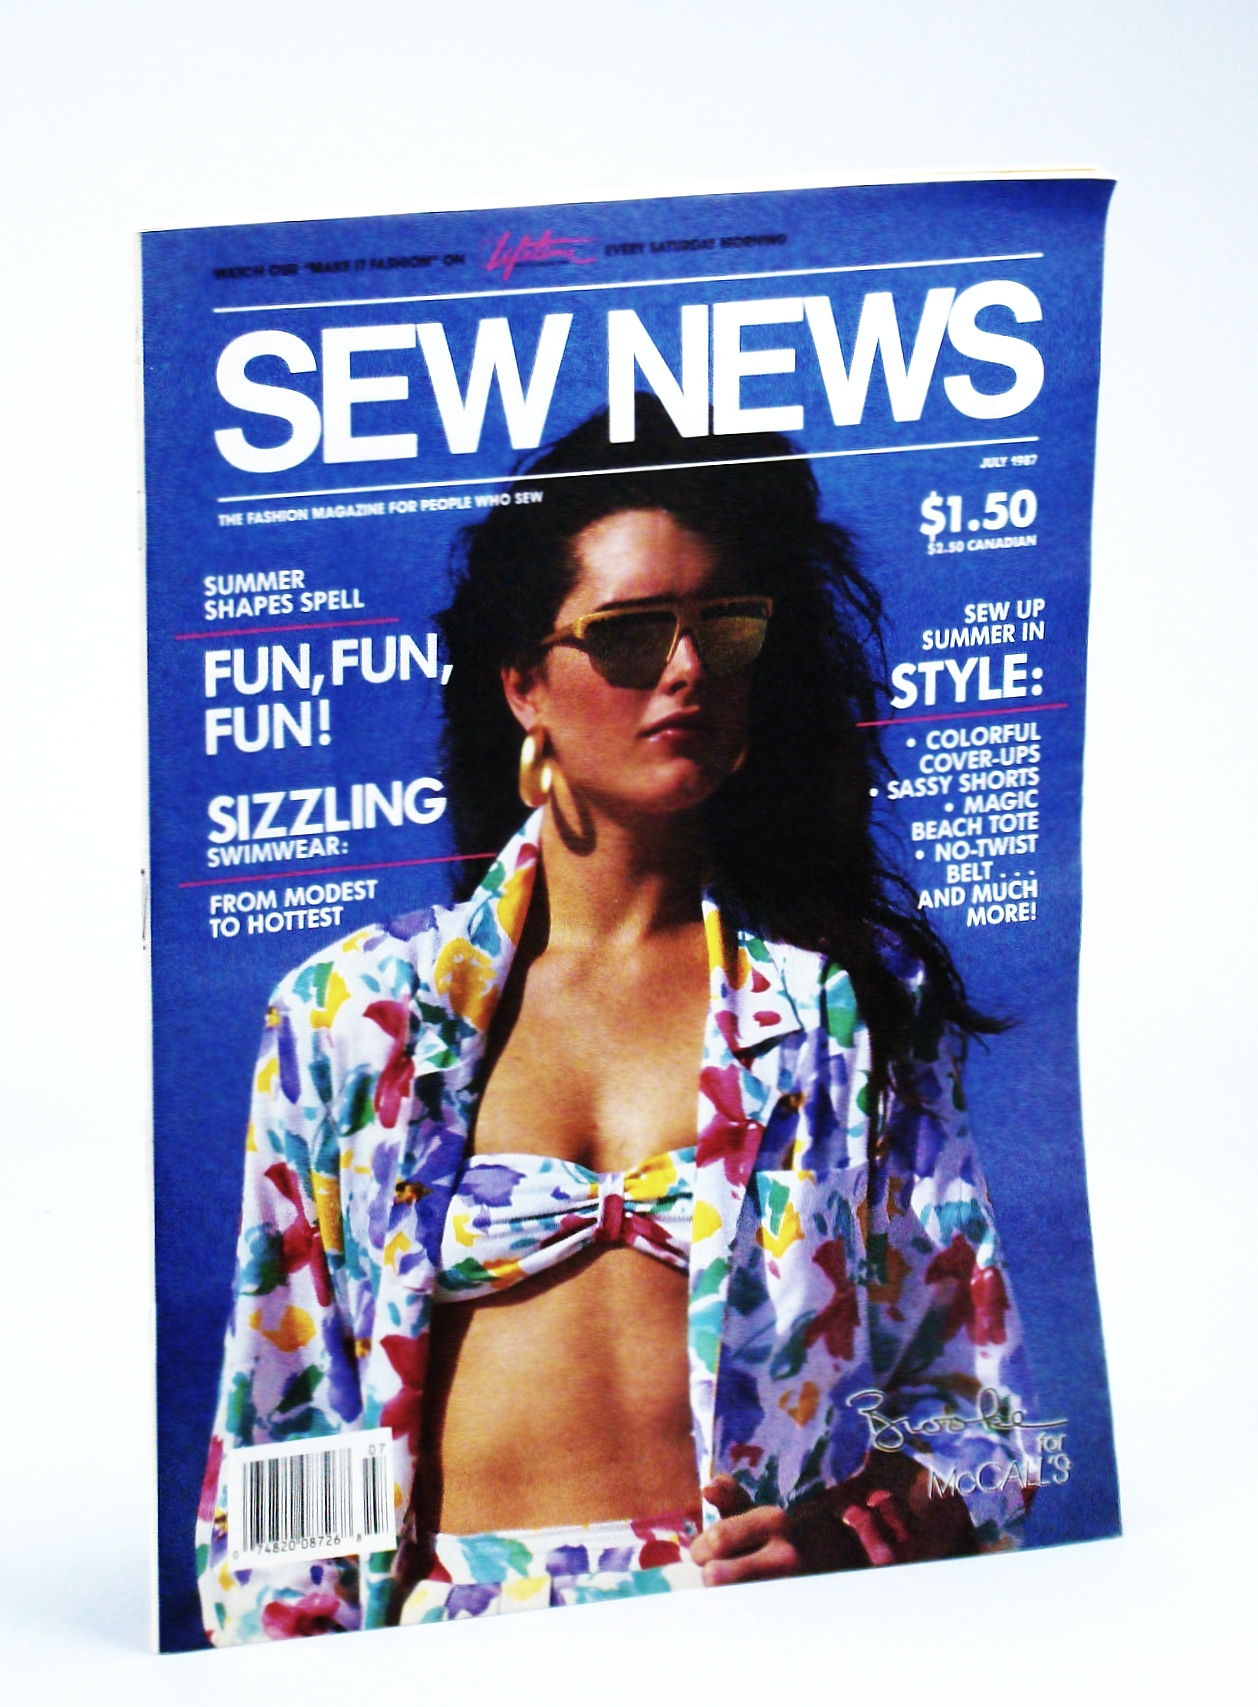 Image for Sew News - The Fashion Magazine For People Who Sew, Number 58, July 1987 - Brooke Shields Cover